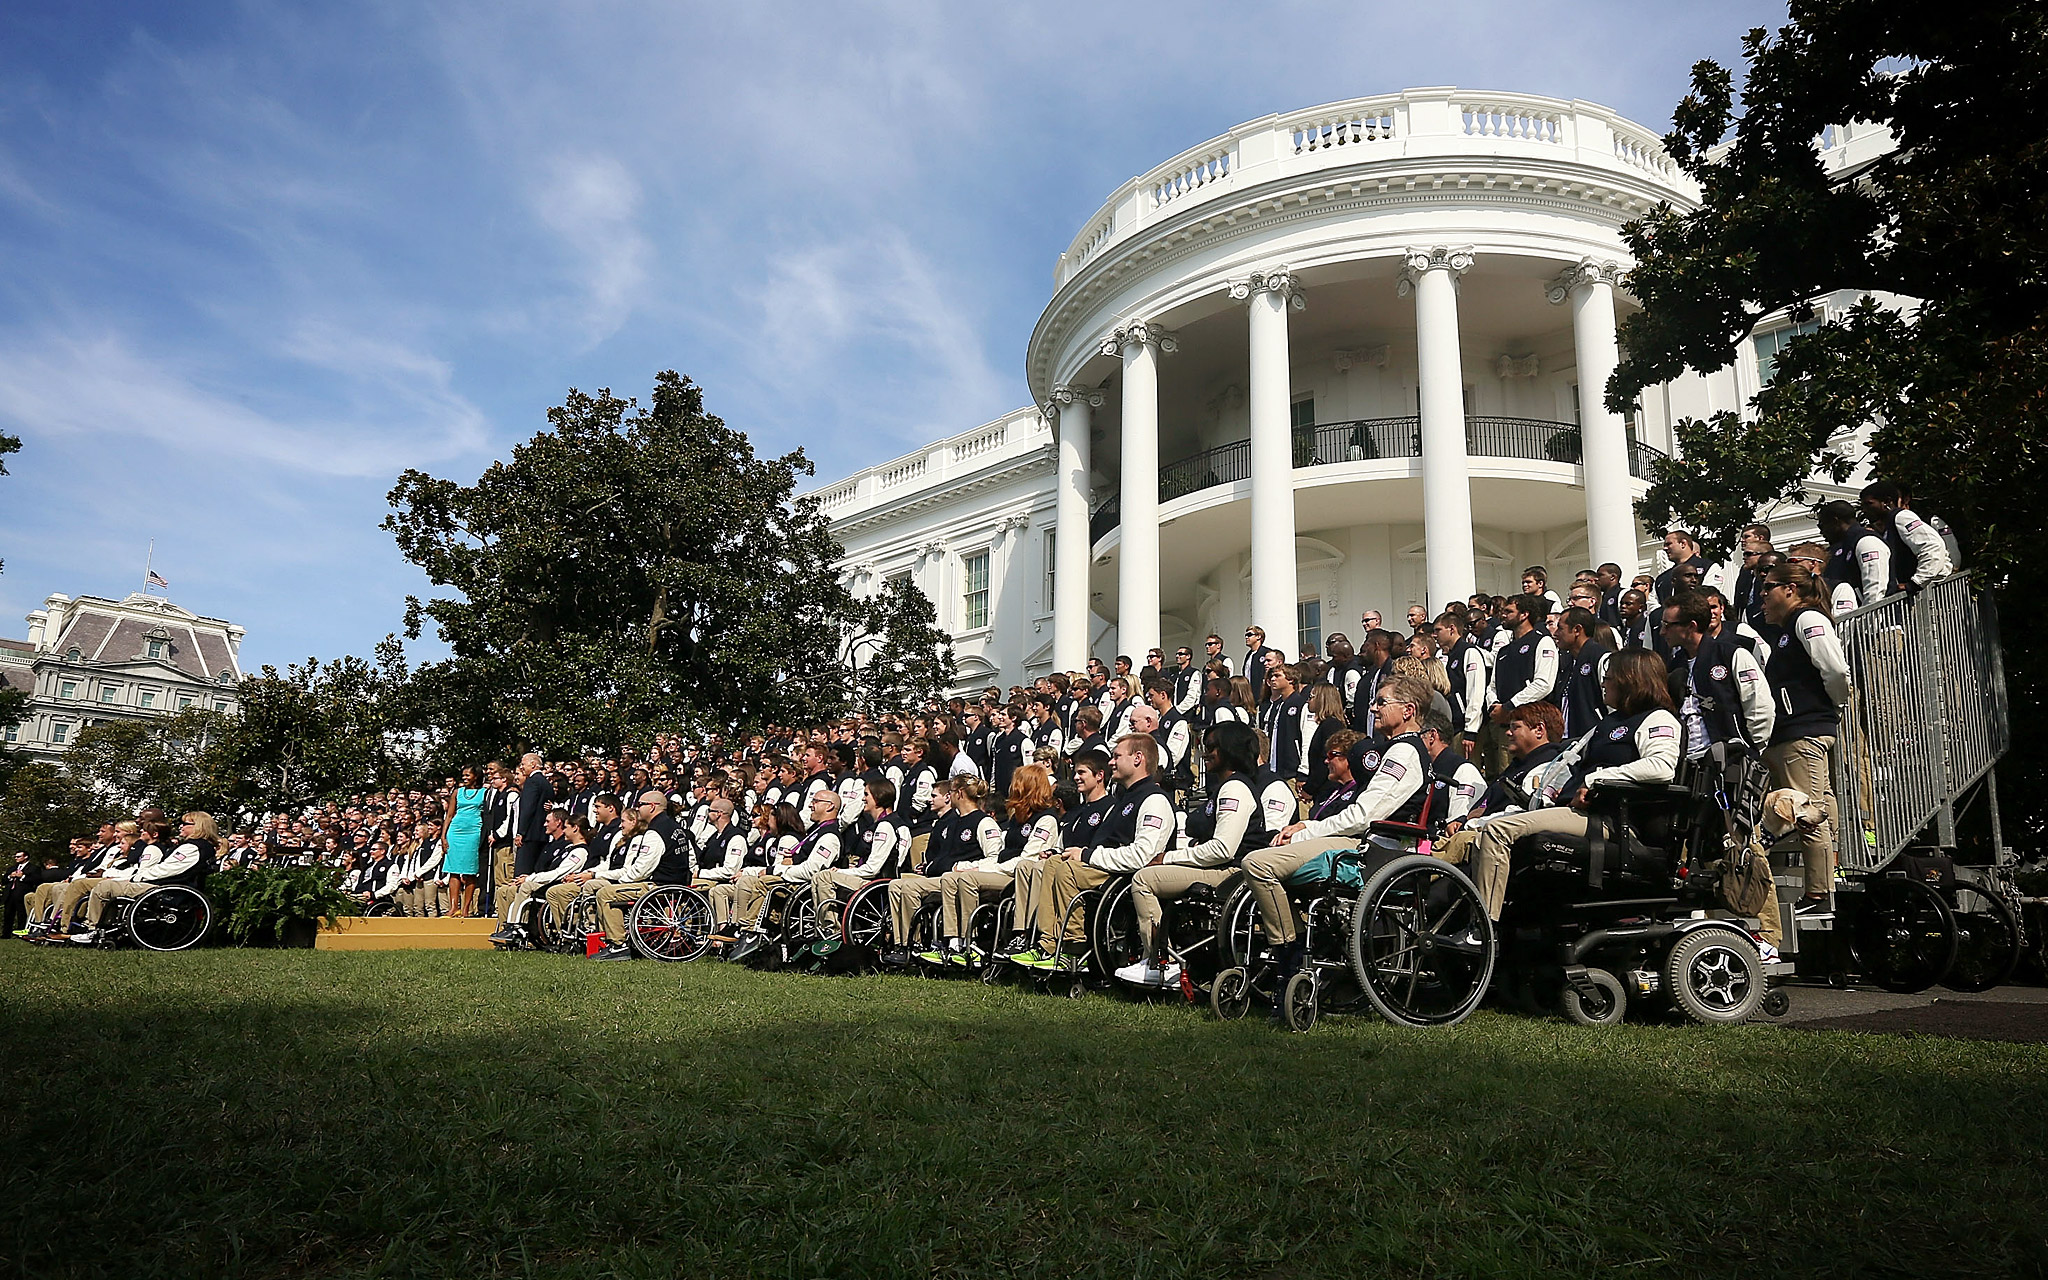 2012 U.S. Olympic and Paralympic teams